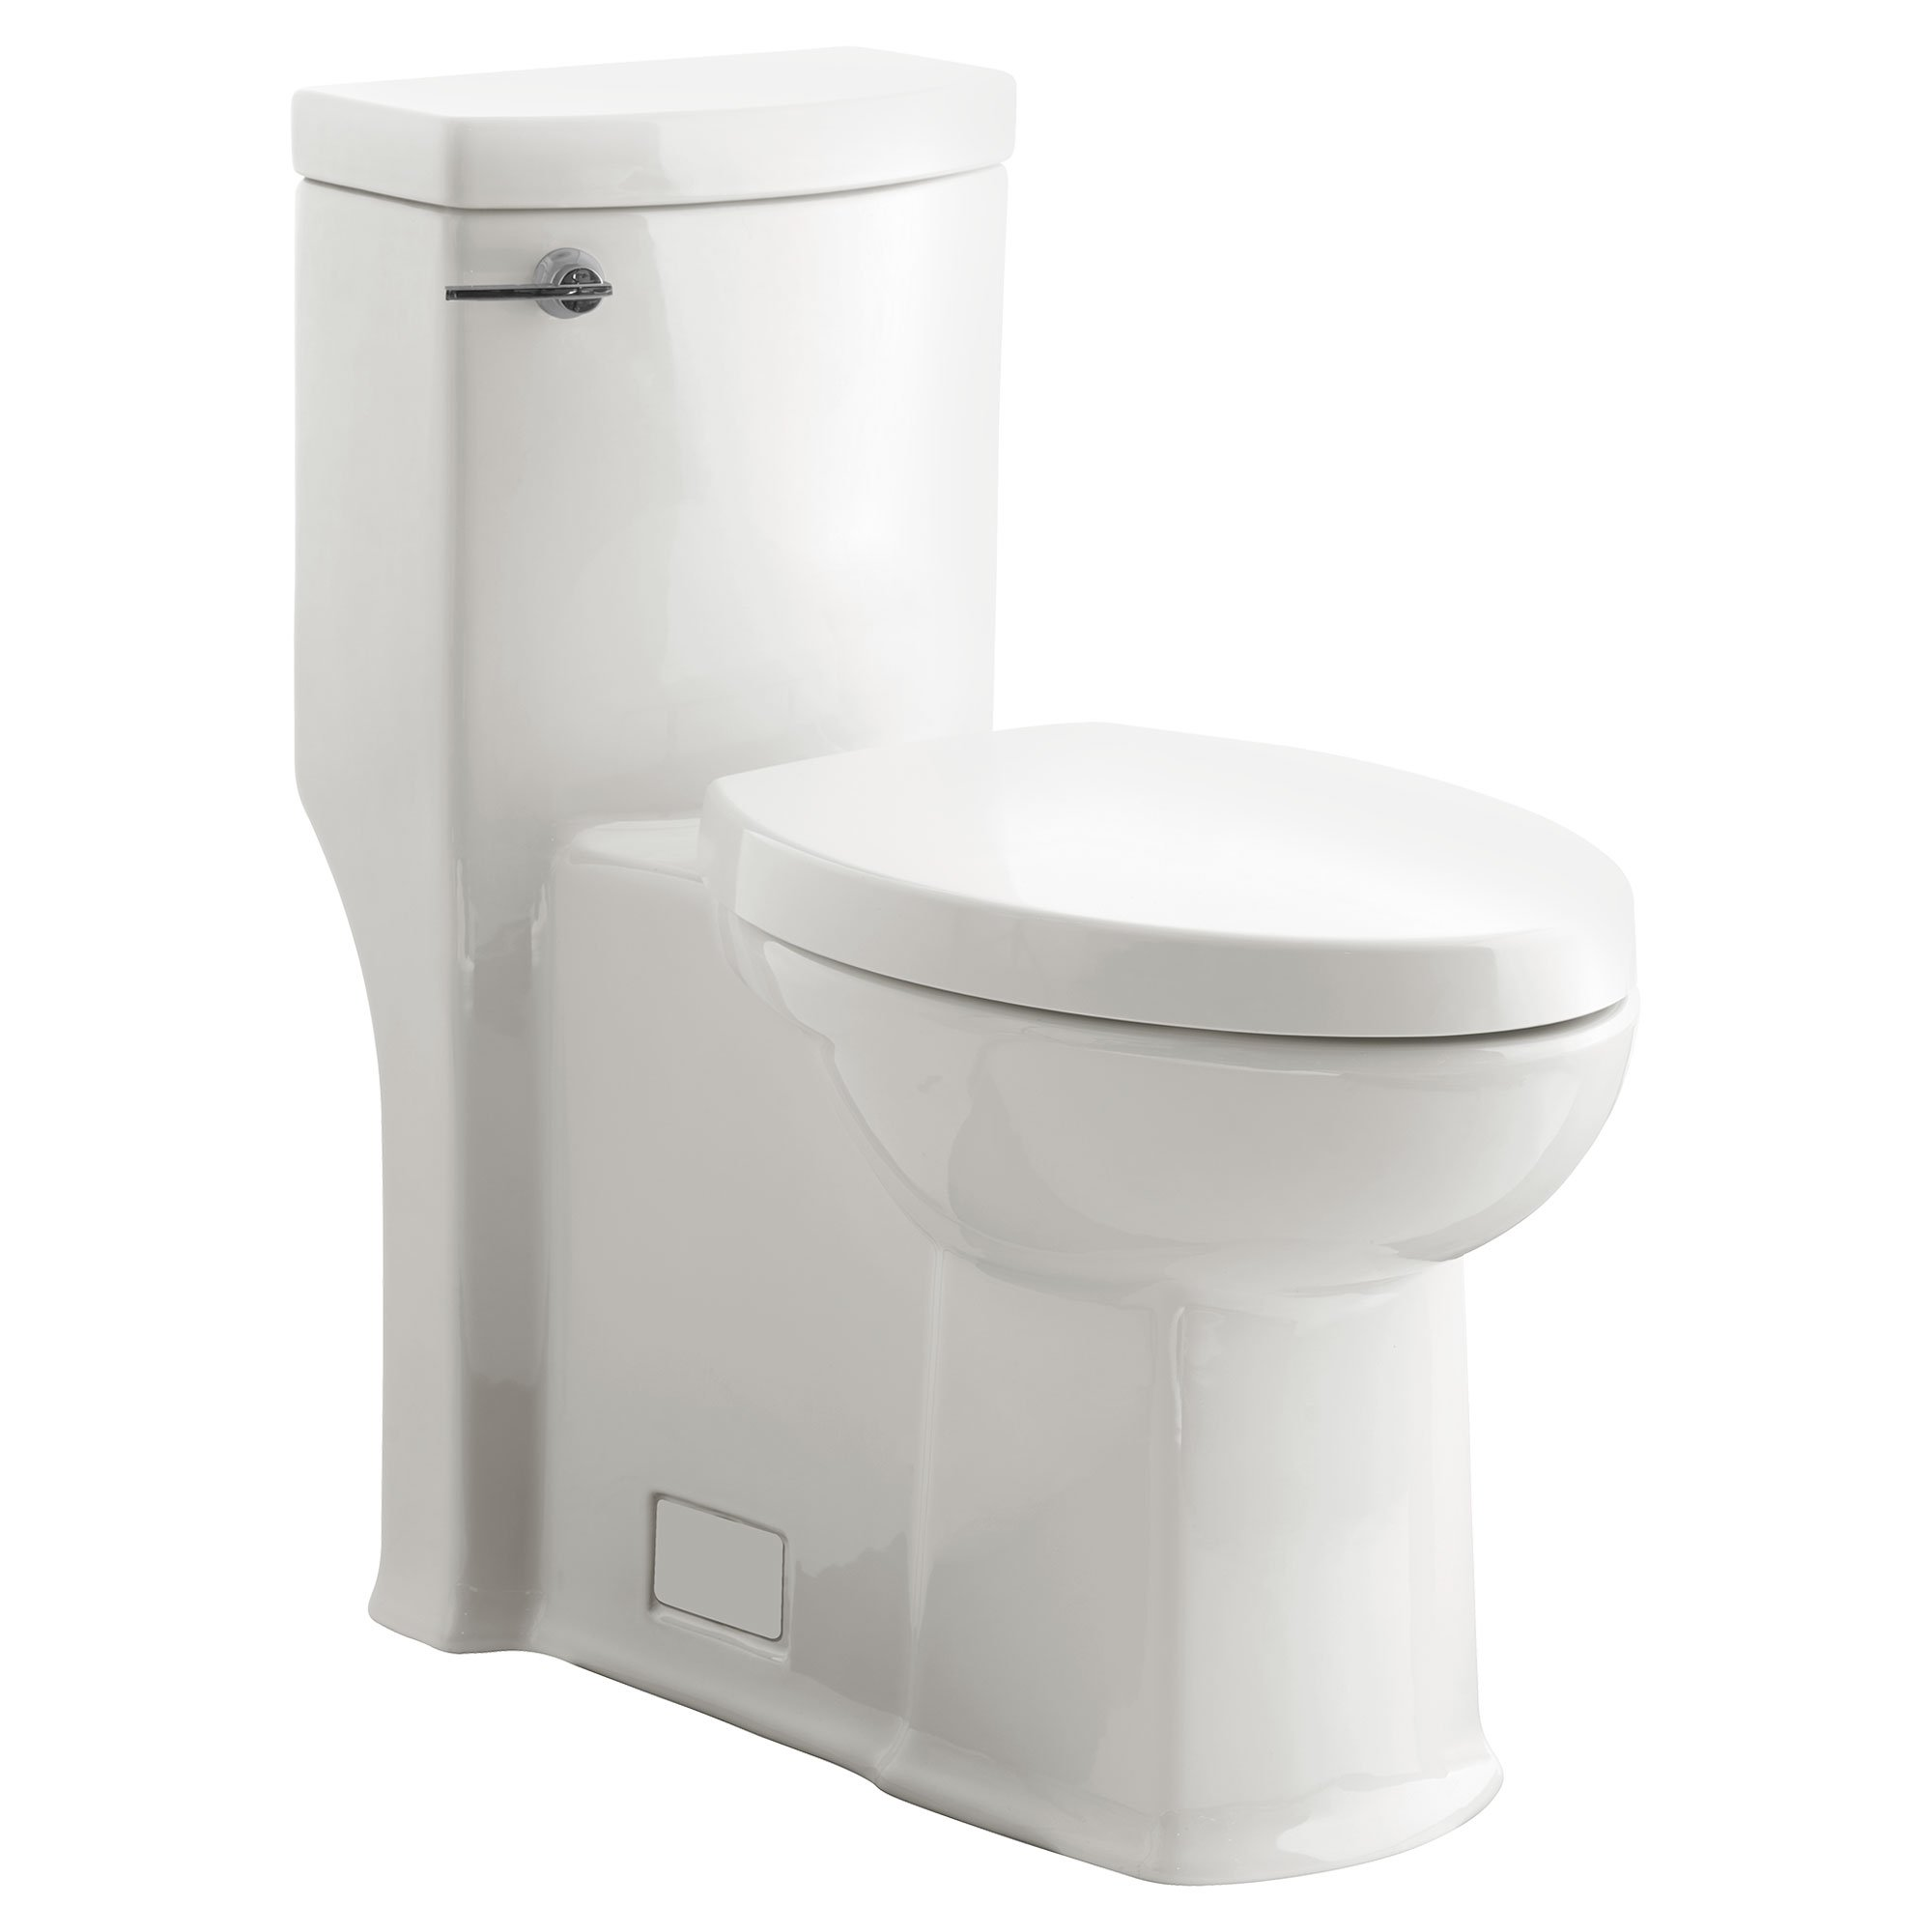 American Standard 2891128.020 Boulevard Flowise Right Height Elongated One-Piece 1.28 Gpf Toilet, White